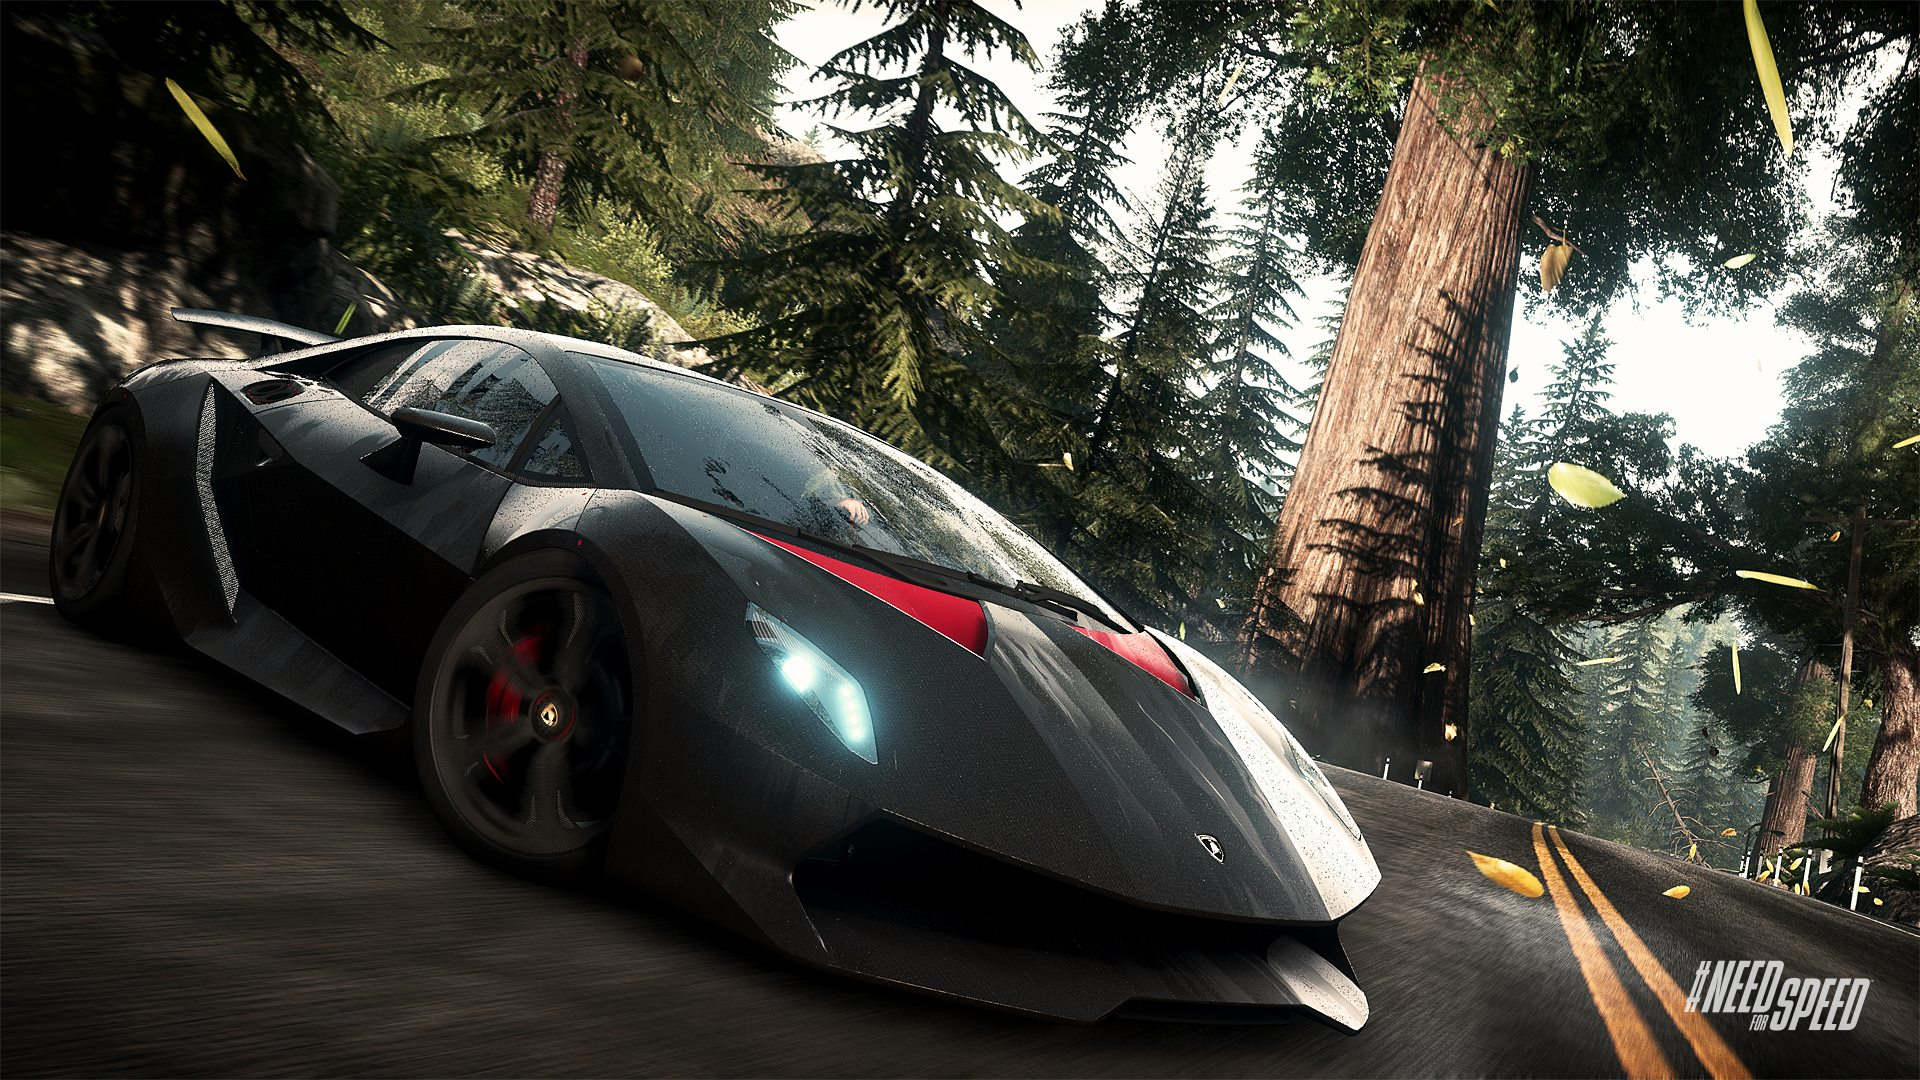 Lamborghini sesto elemento fond d 39 cran hd arri re plan for Need for speed wallpaper